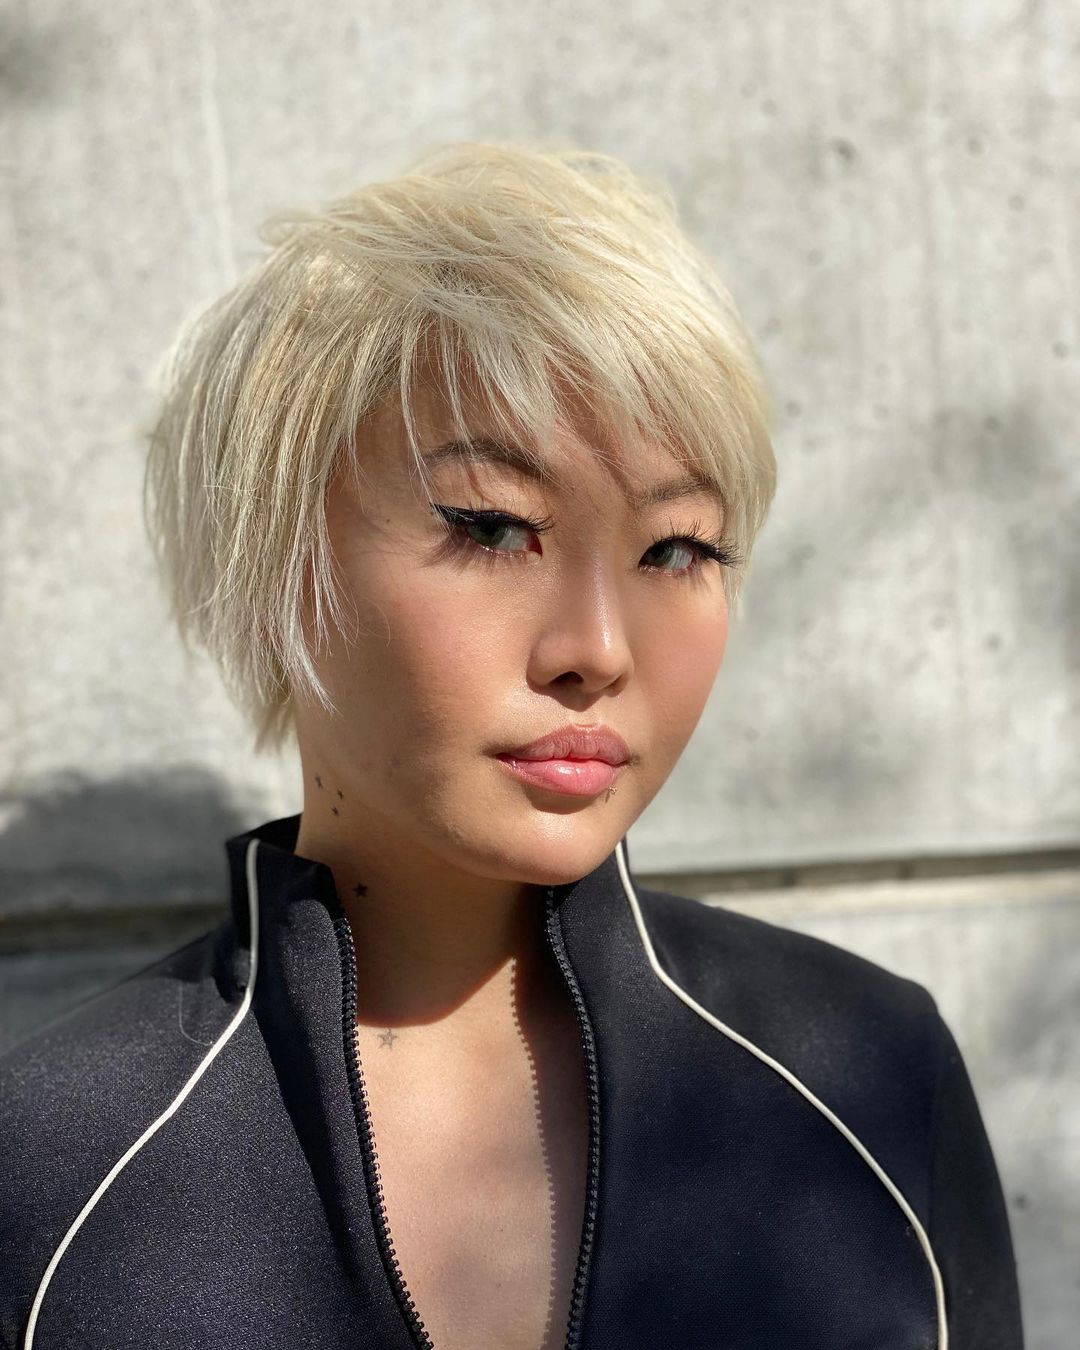 The 15 Hottest Haircuts of 2021